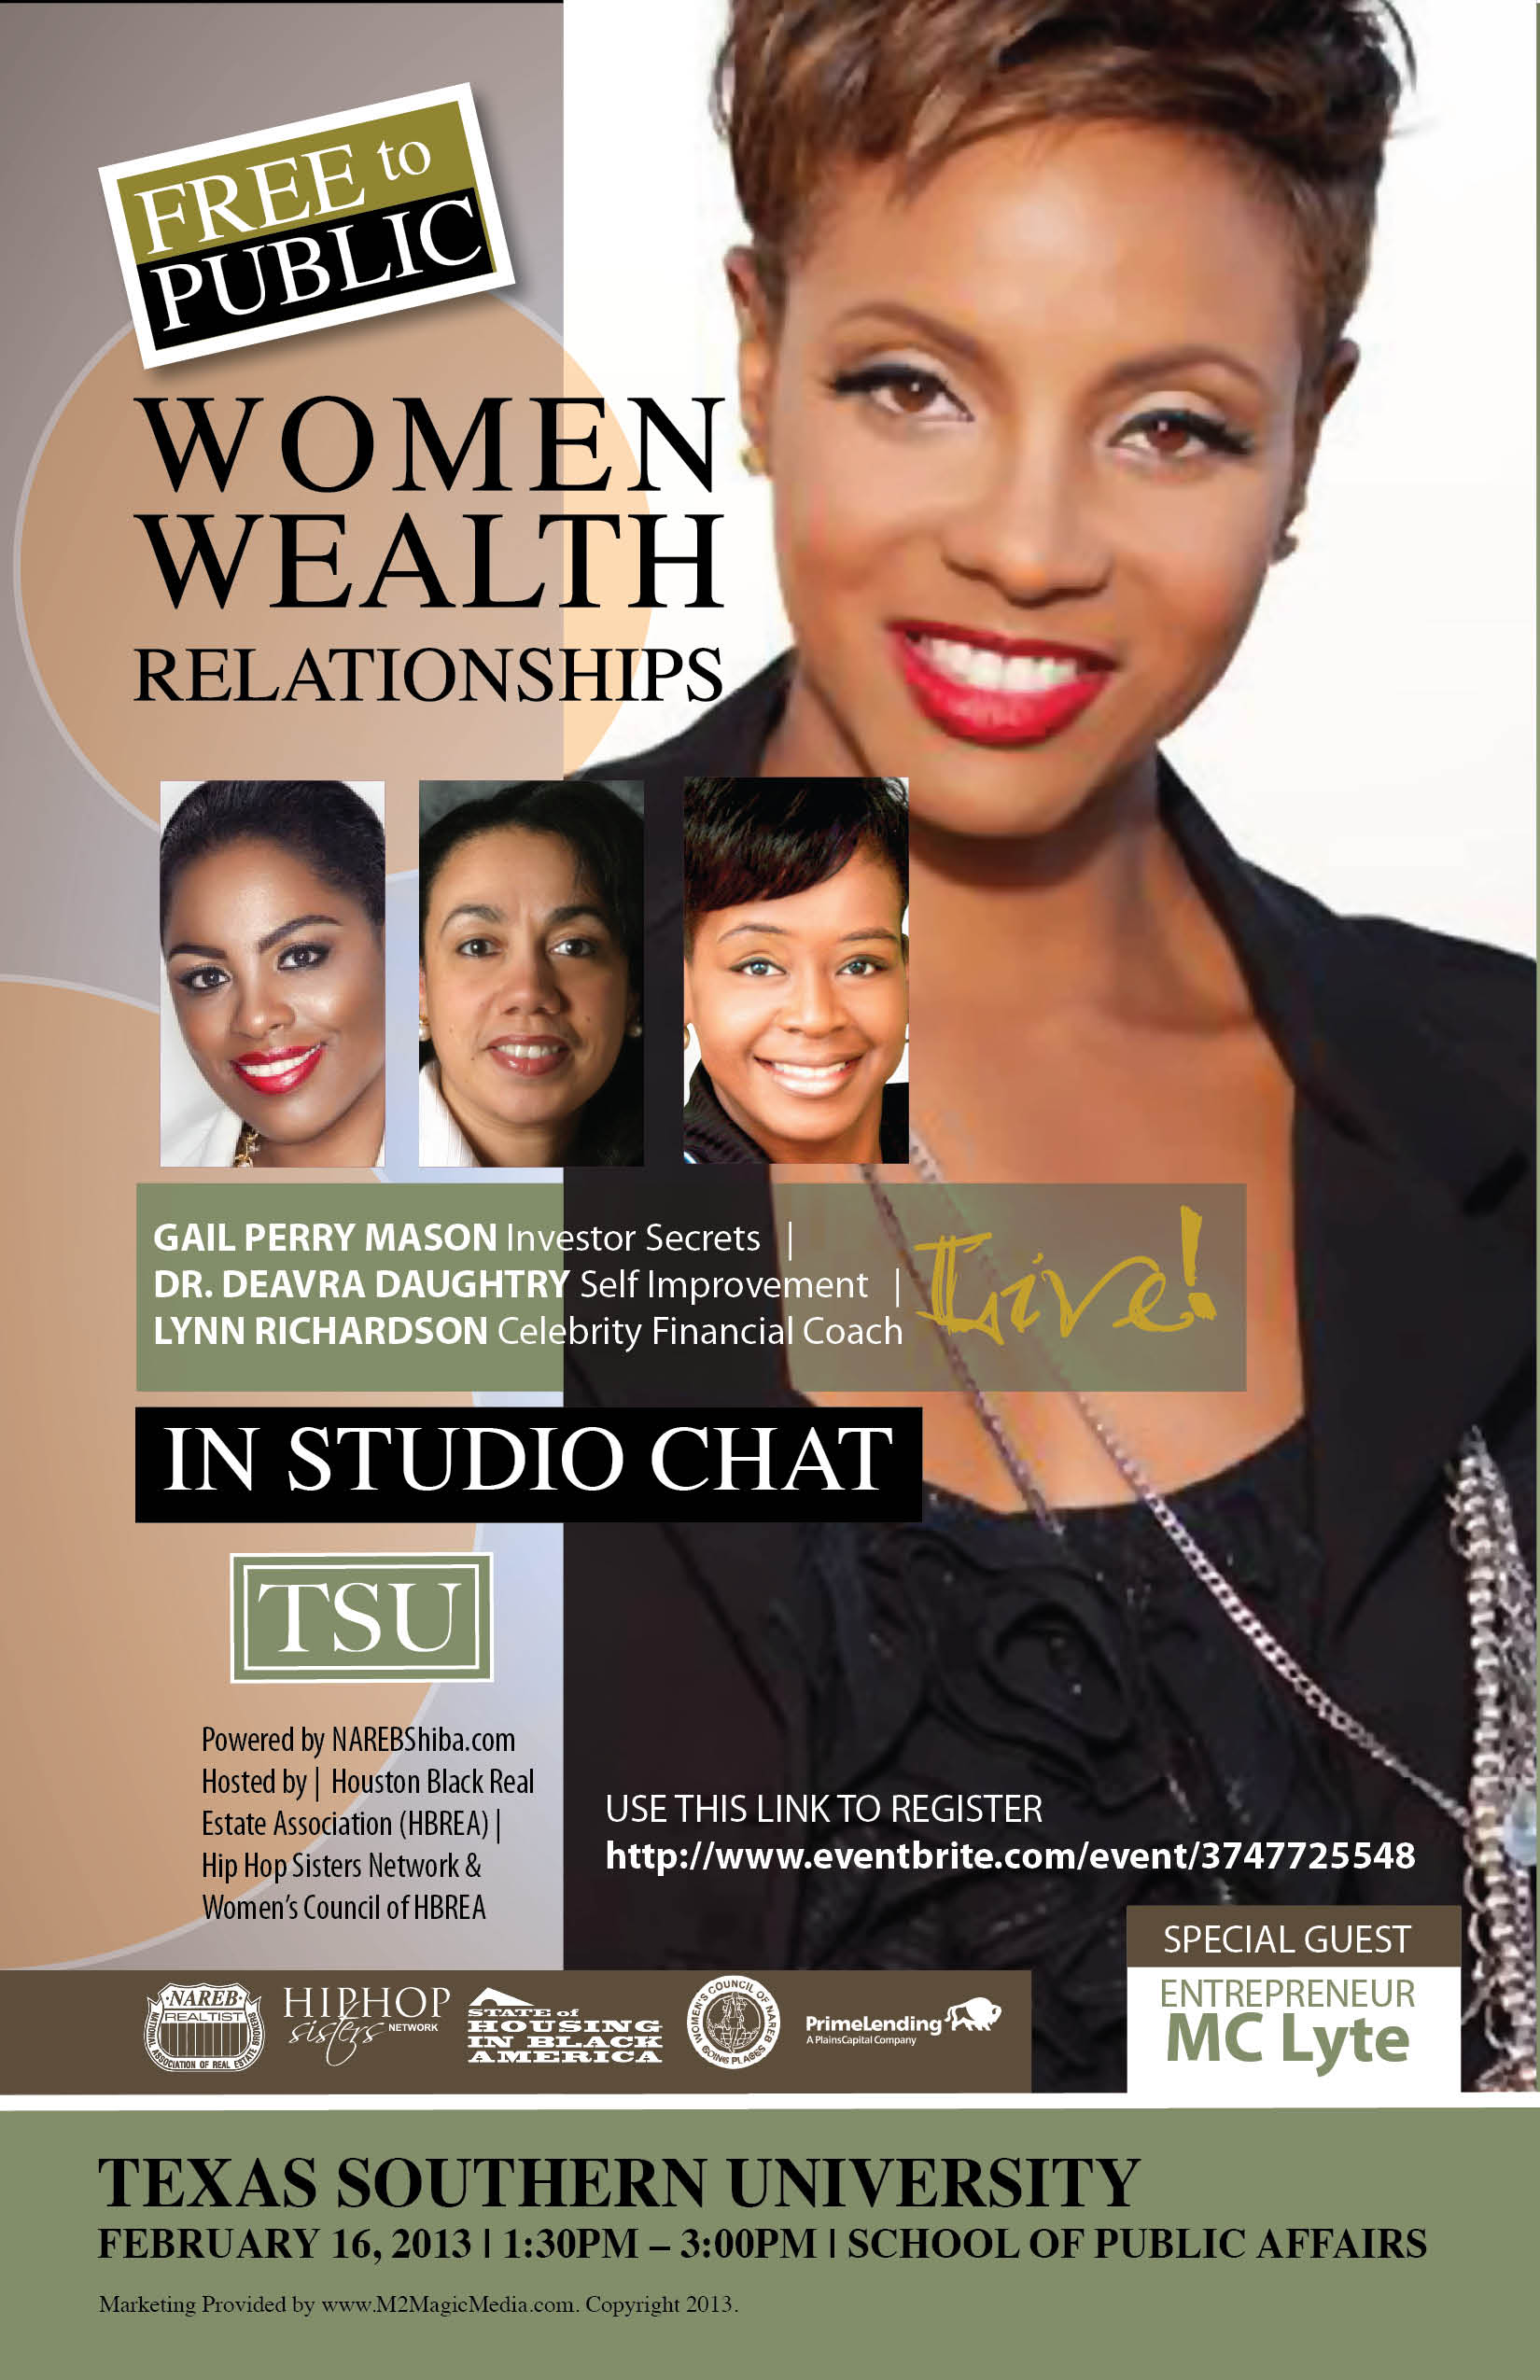 Women Wealth & Relationships w MC Lyte